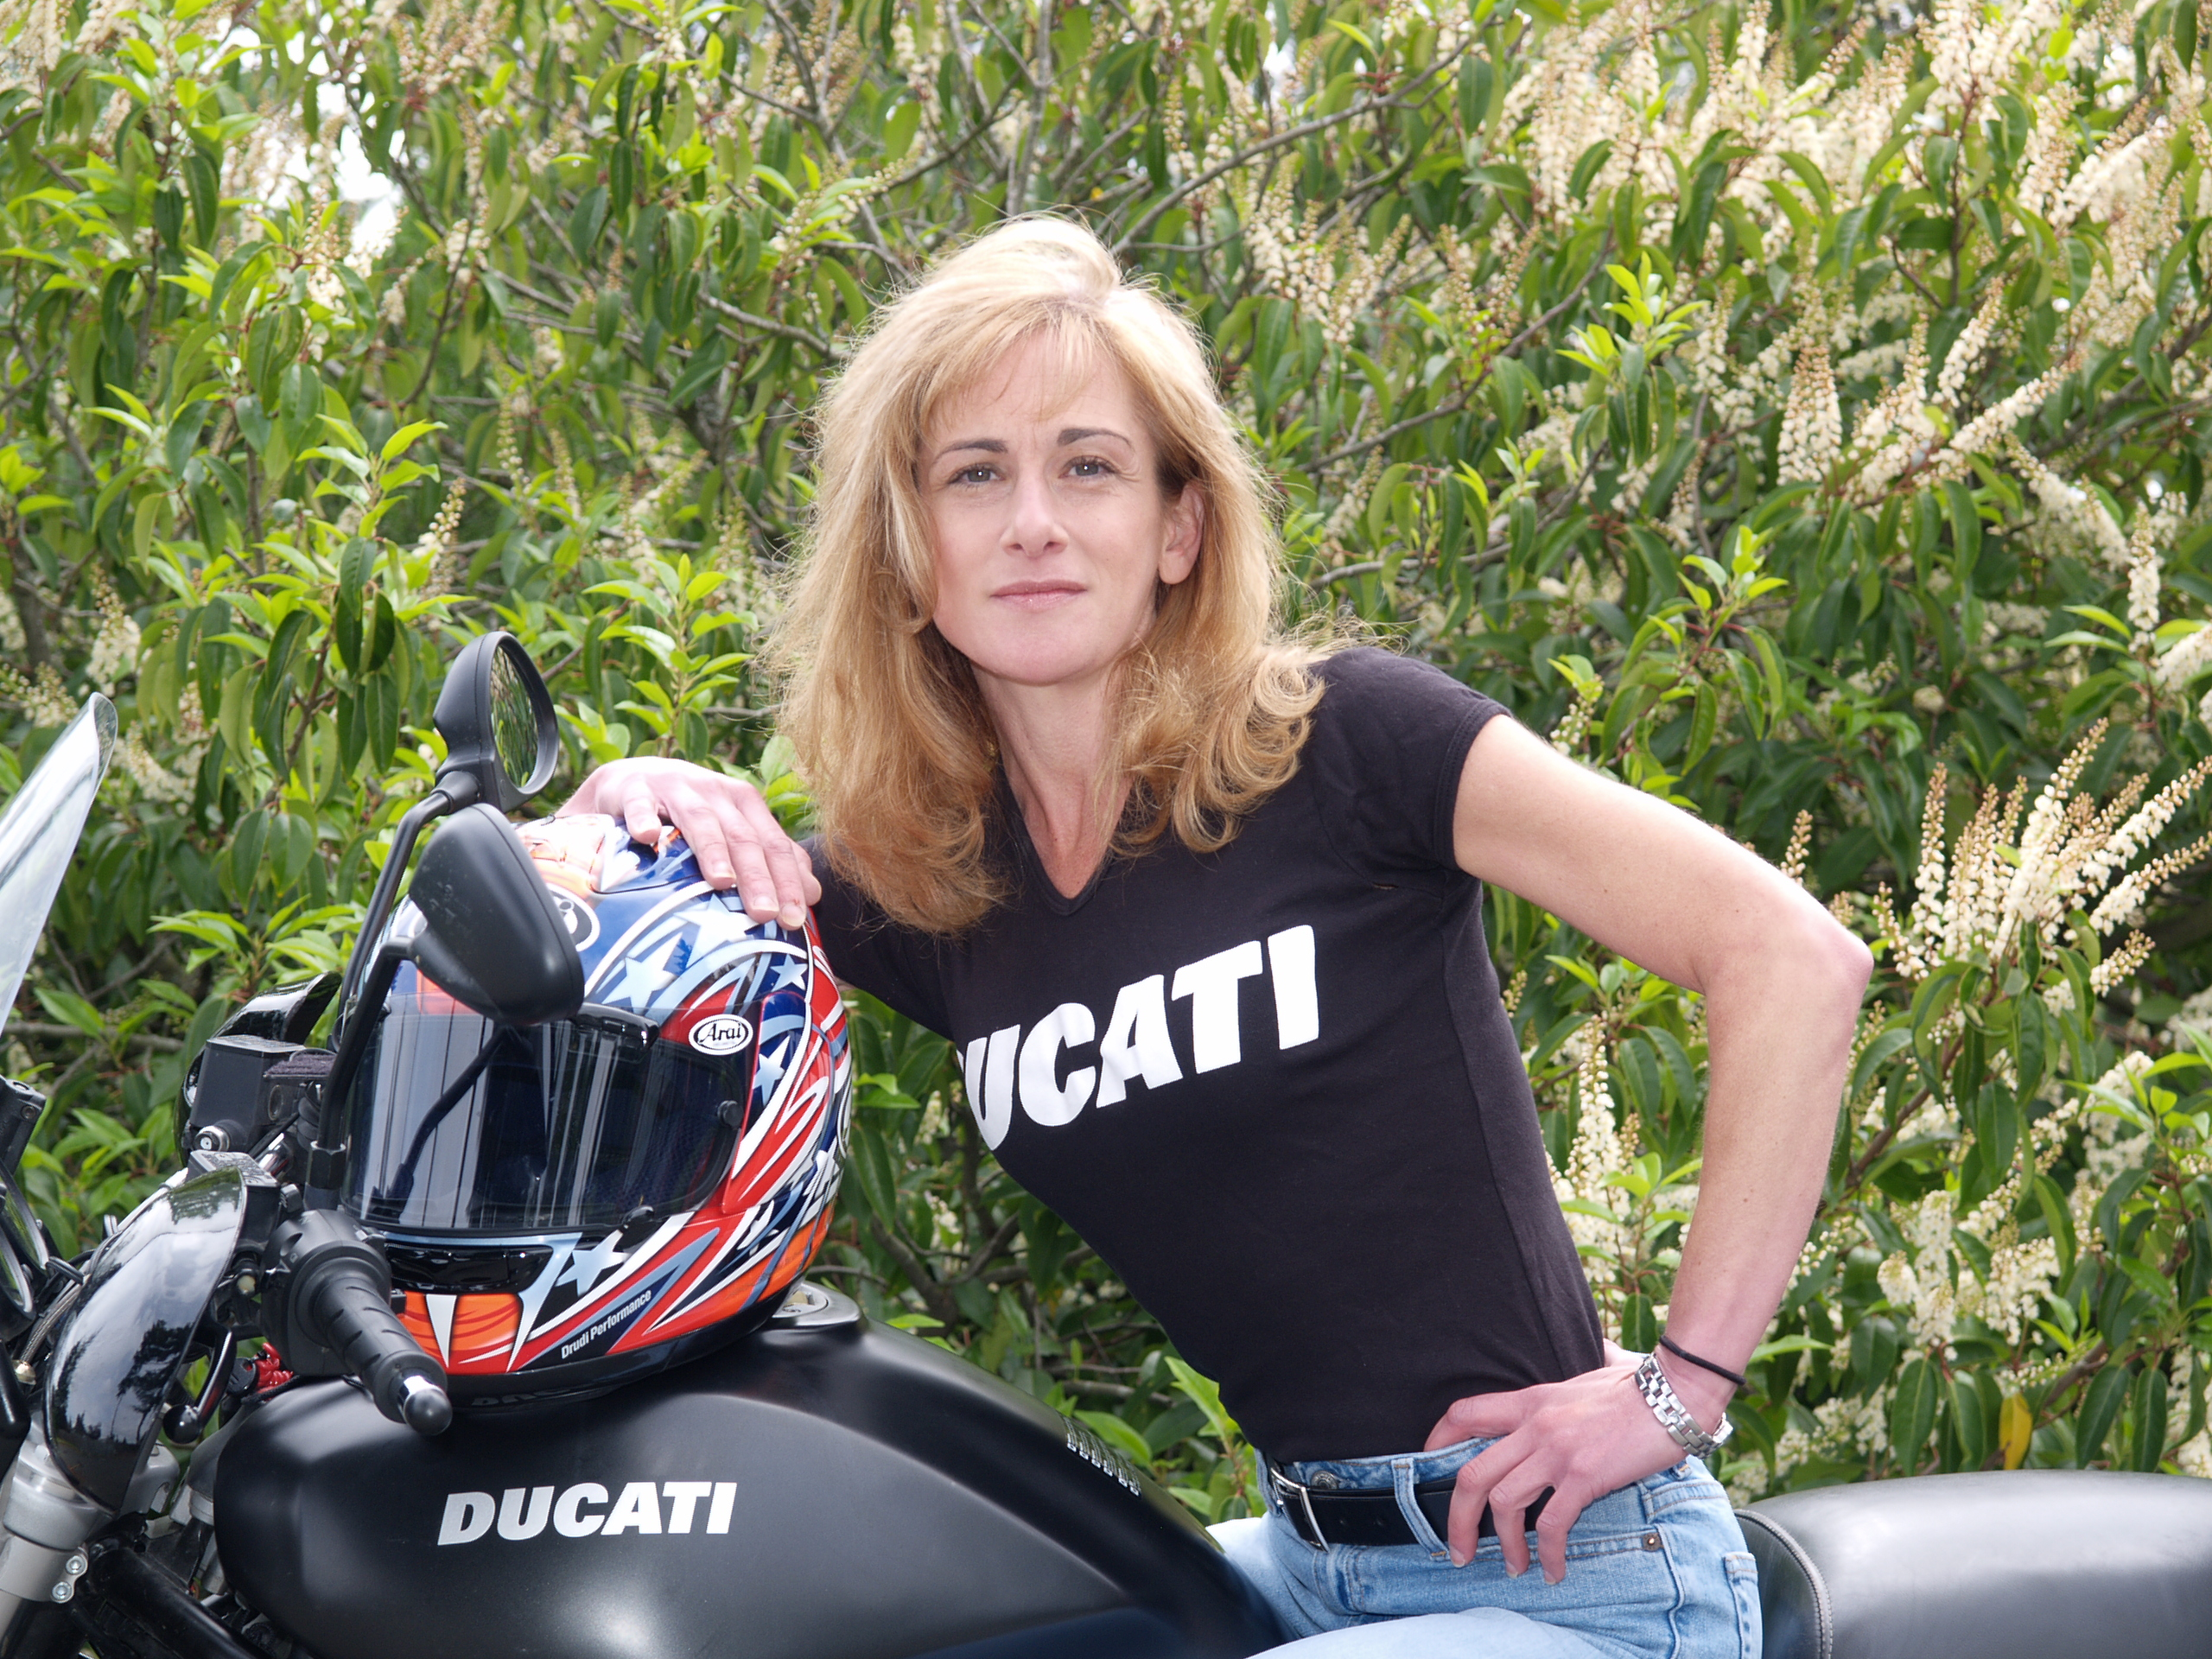 Rachel, Tigerracing, on motorcycle